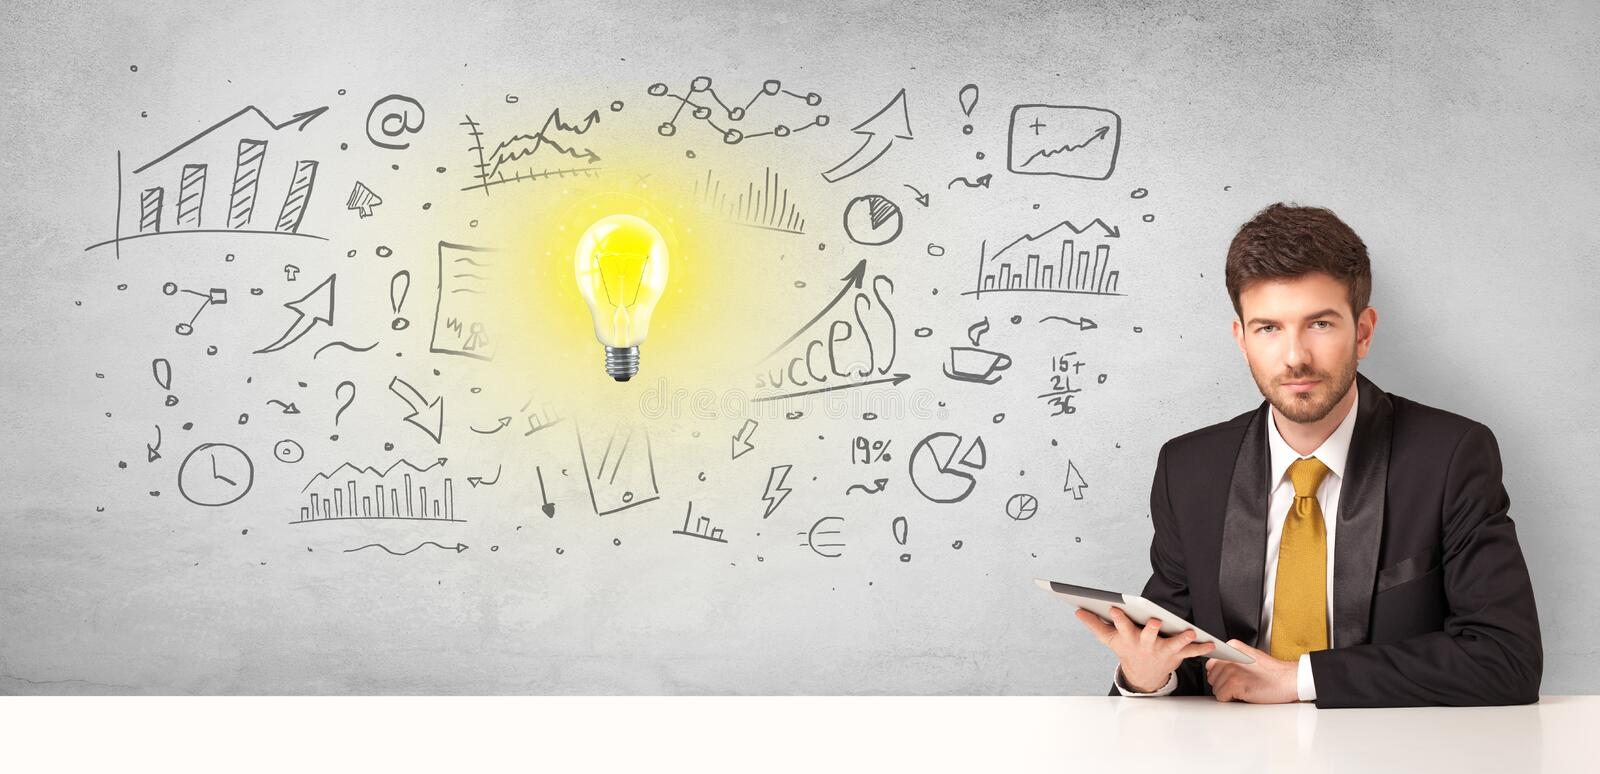 Business person with new idea concept. Young business person with new idea and workflow concept royalty free stock photography